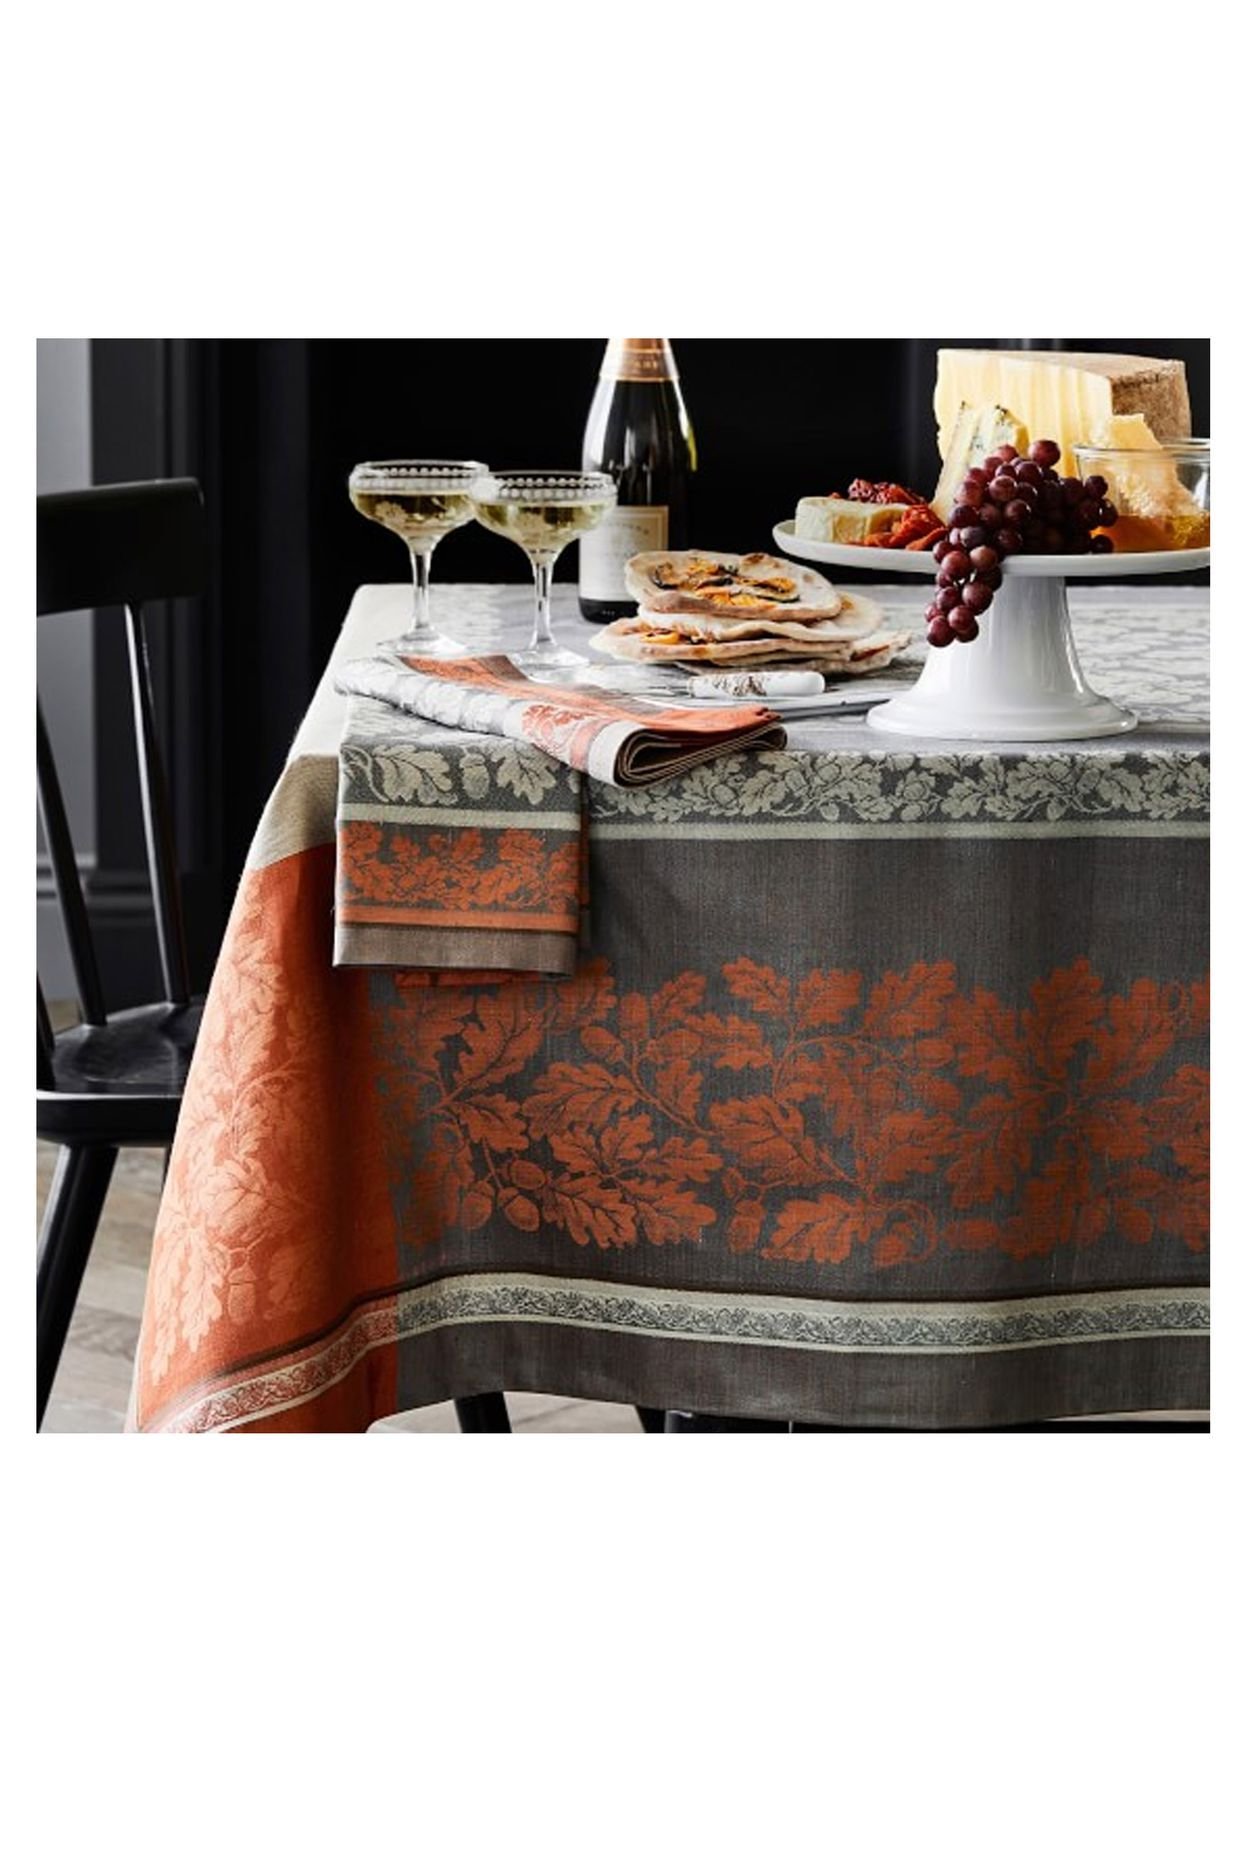 These Thanksgiving Tablecloths Make for an Unforgettable ...